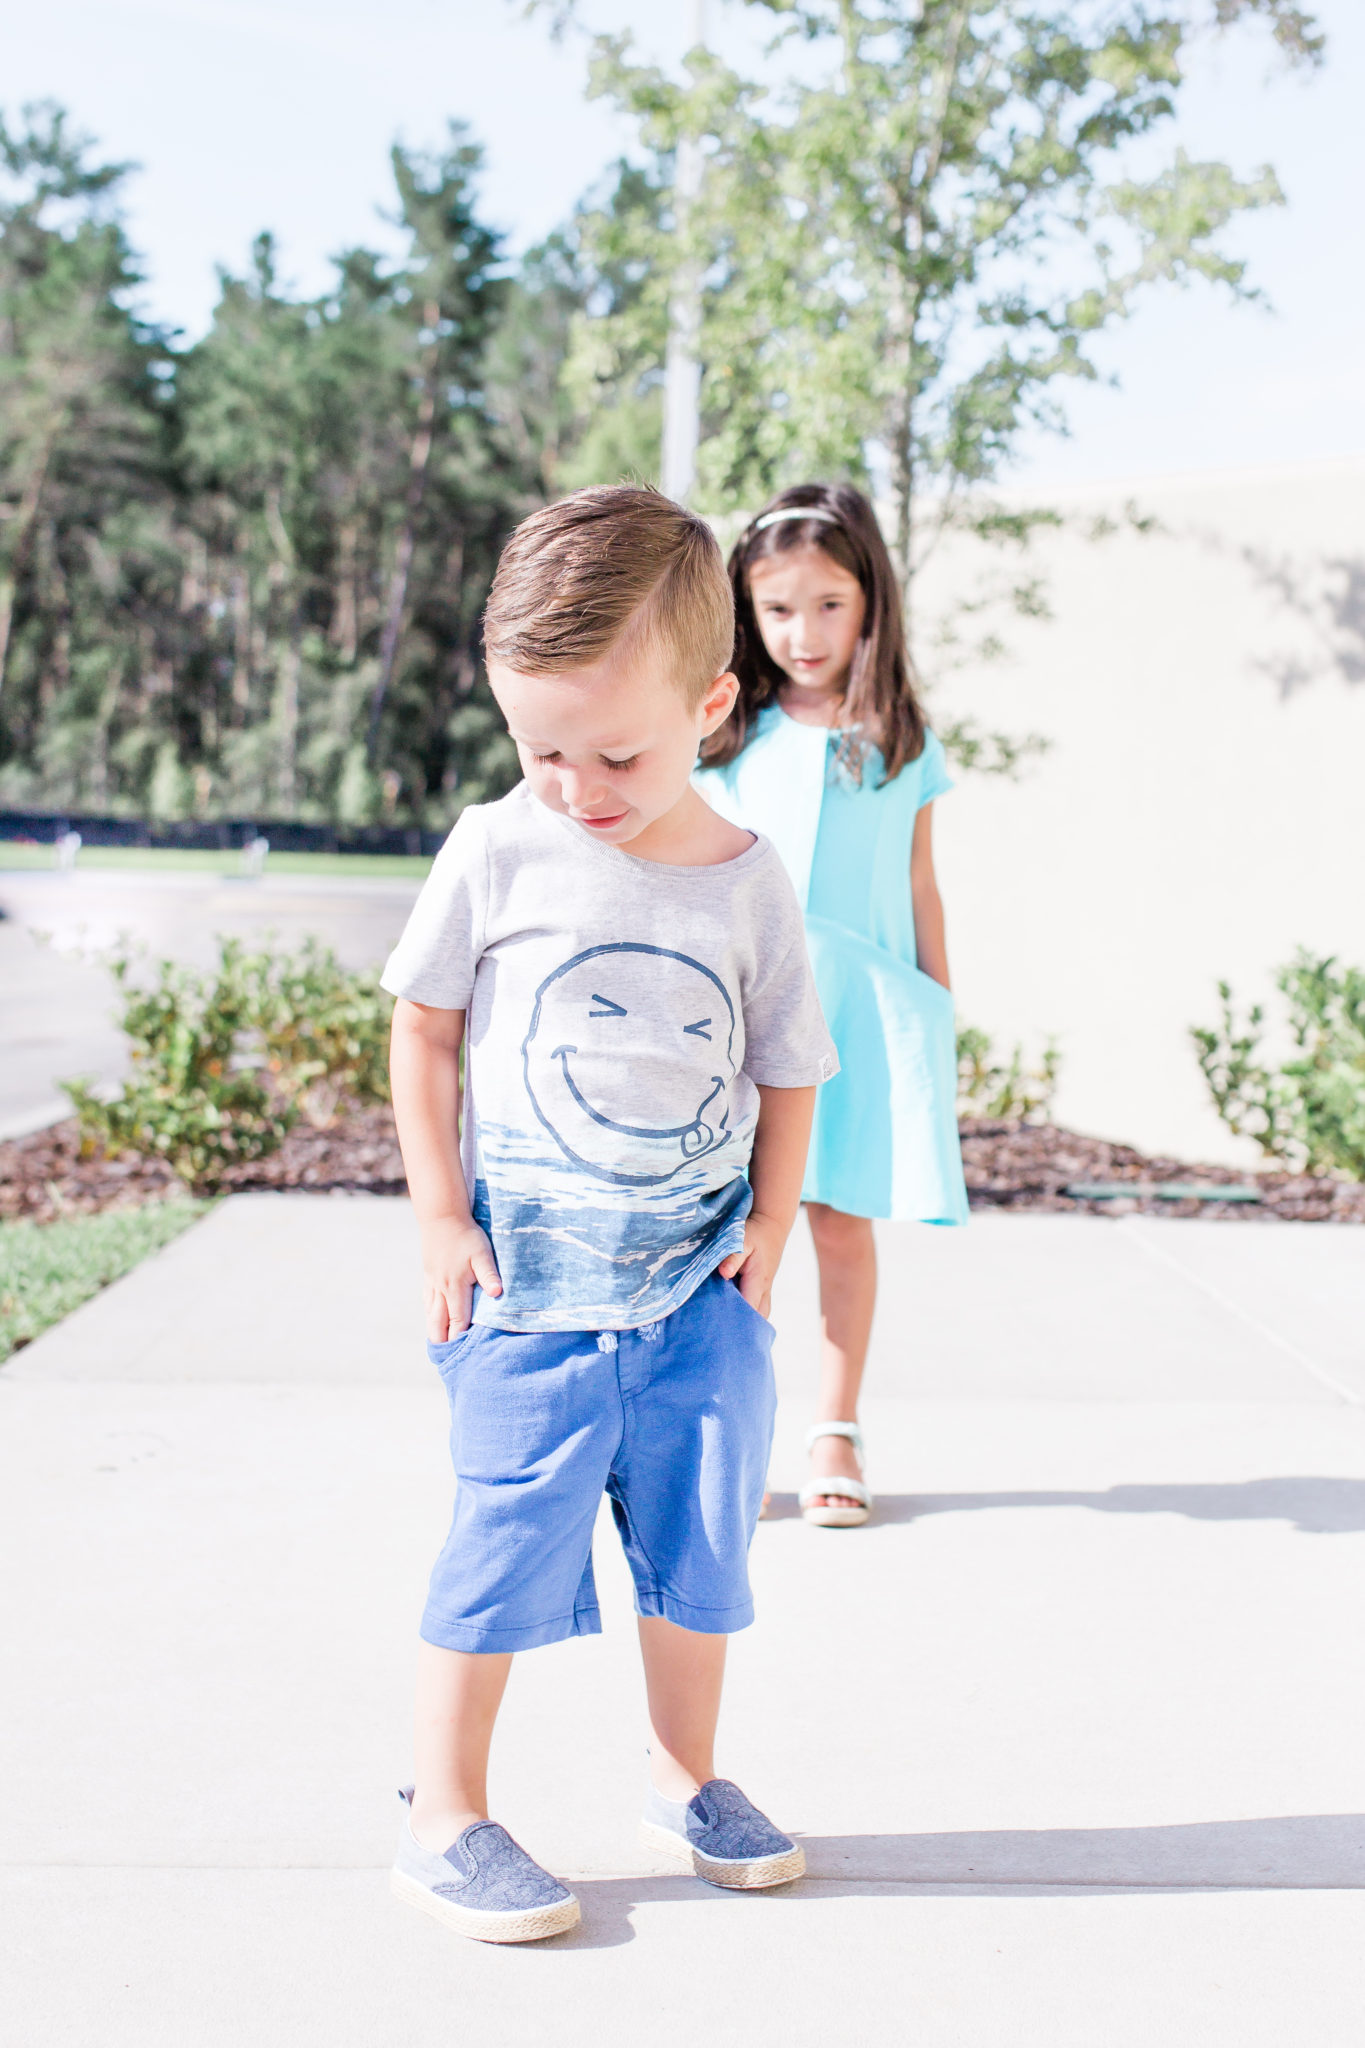 Art & Eden, fashion for boys and girls, organic clothing, summer fashion for kids, Tampa parenting blog mothers blog motherhood blog Florida travel blogger travel influencer healthy mom blogger spring hill florida lifestyle parenting blog best mom blog 2018